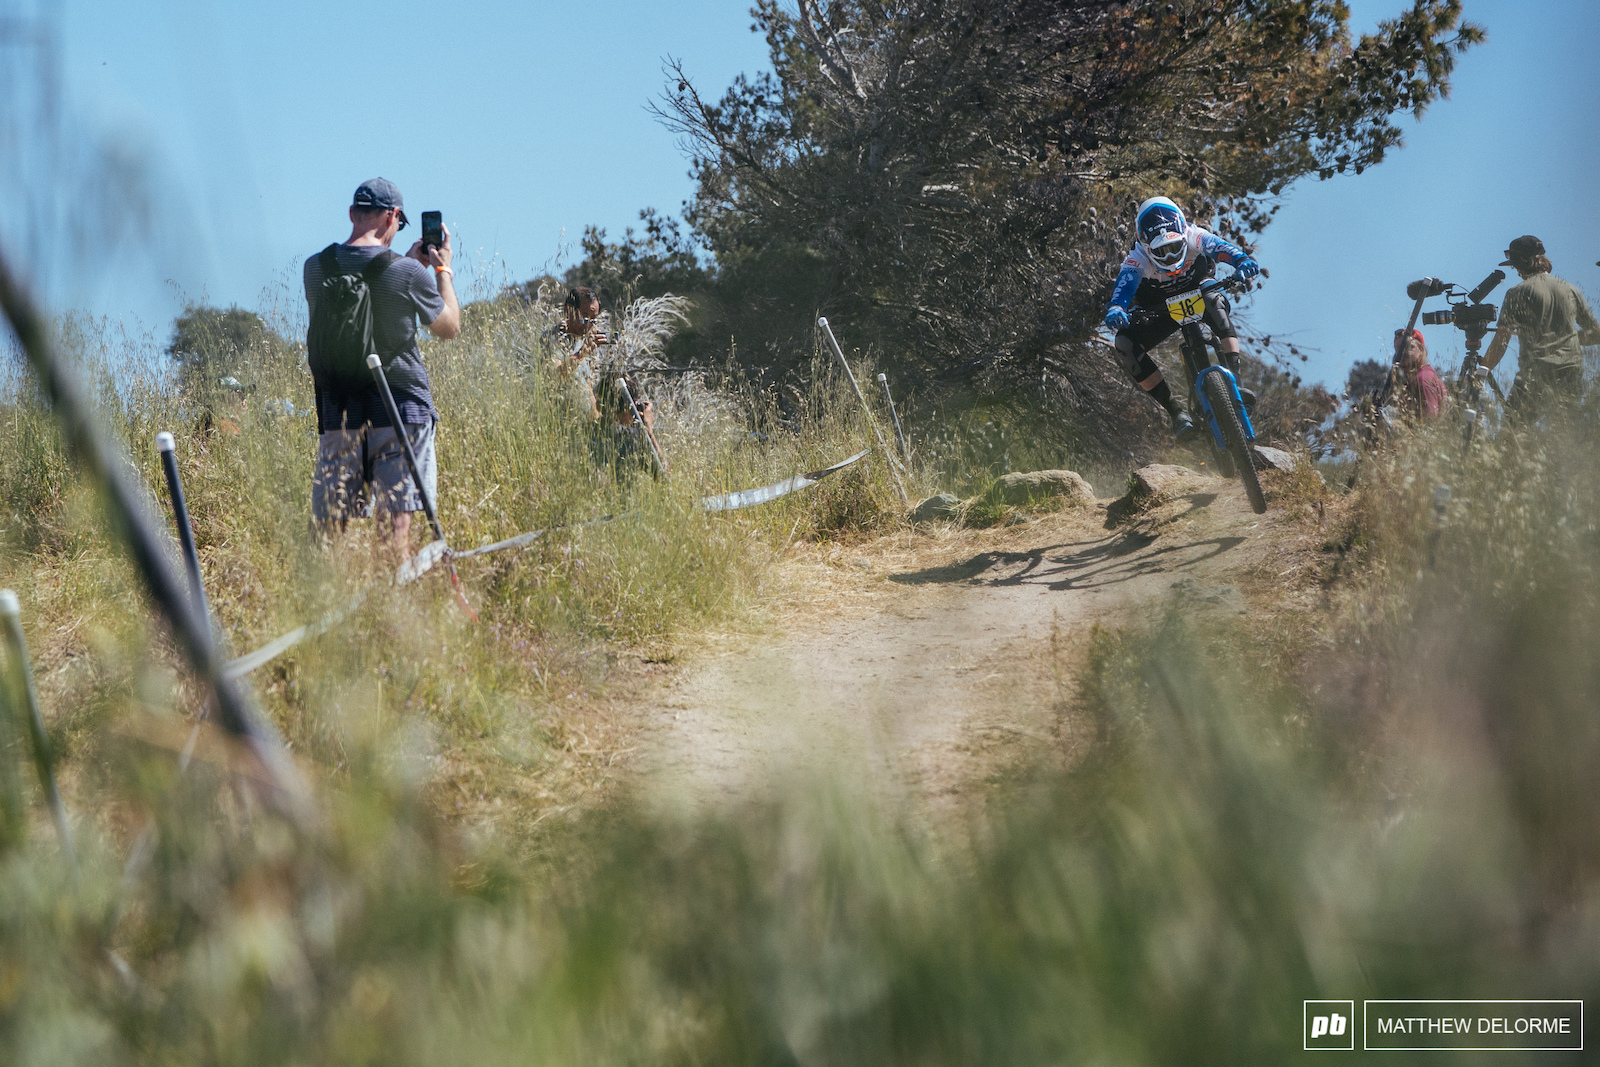 Josh Carlson on his way to fourth place at the Sea Otter DH.